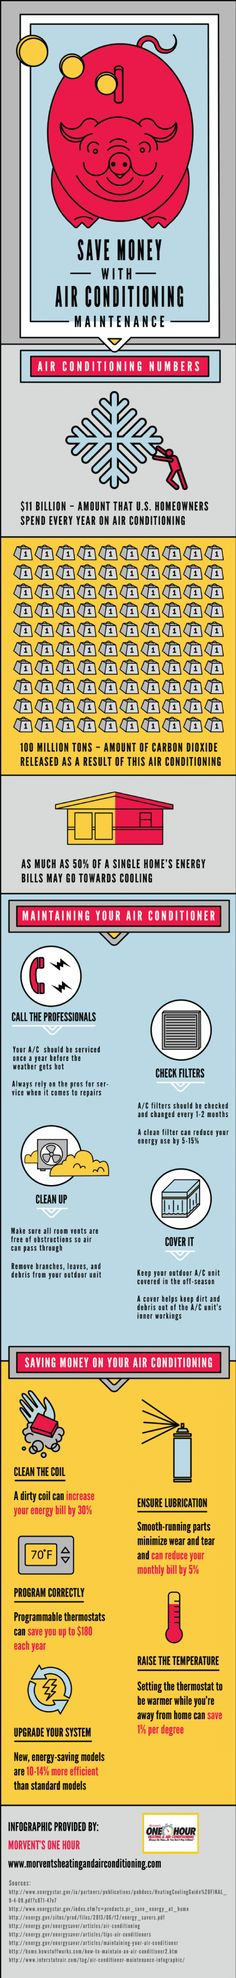 Save Money with Air Conditioning Maintenance